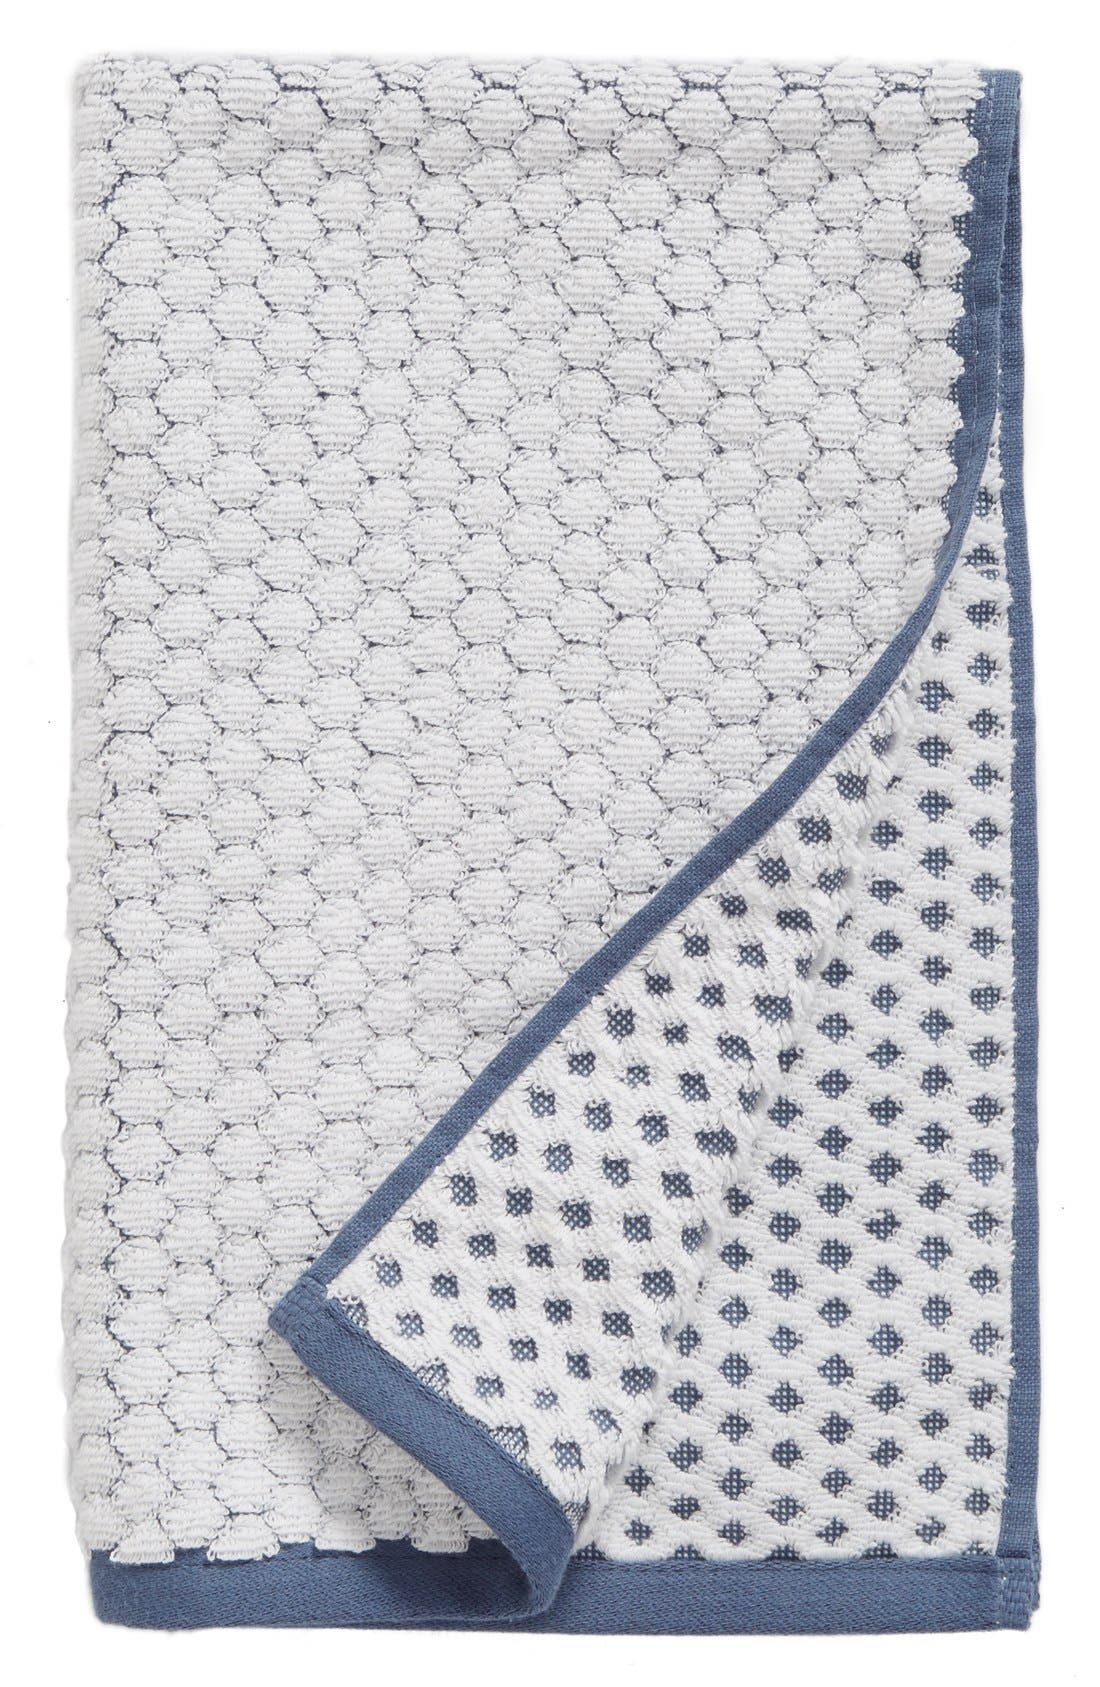 Nordstrom at Home Cobble Hand Towel